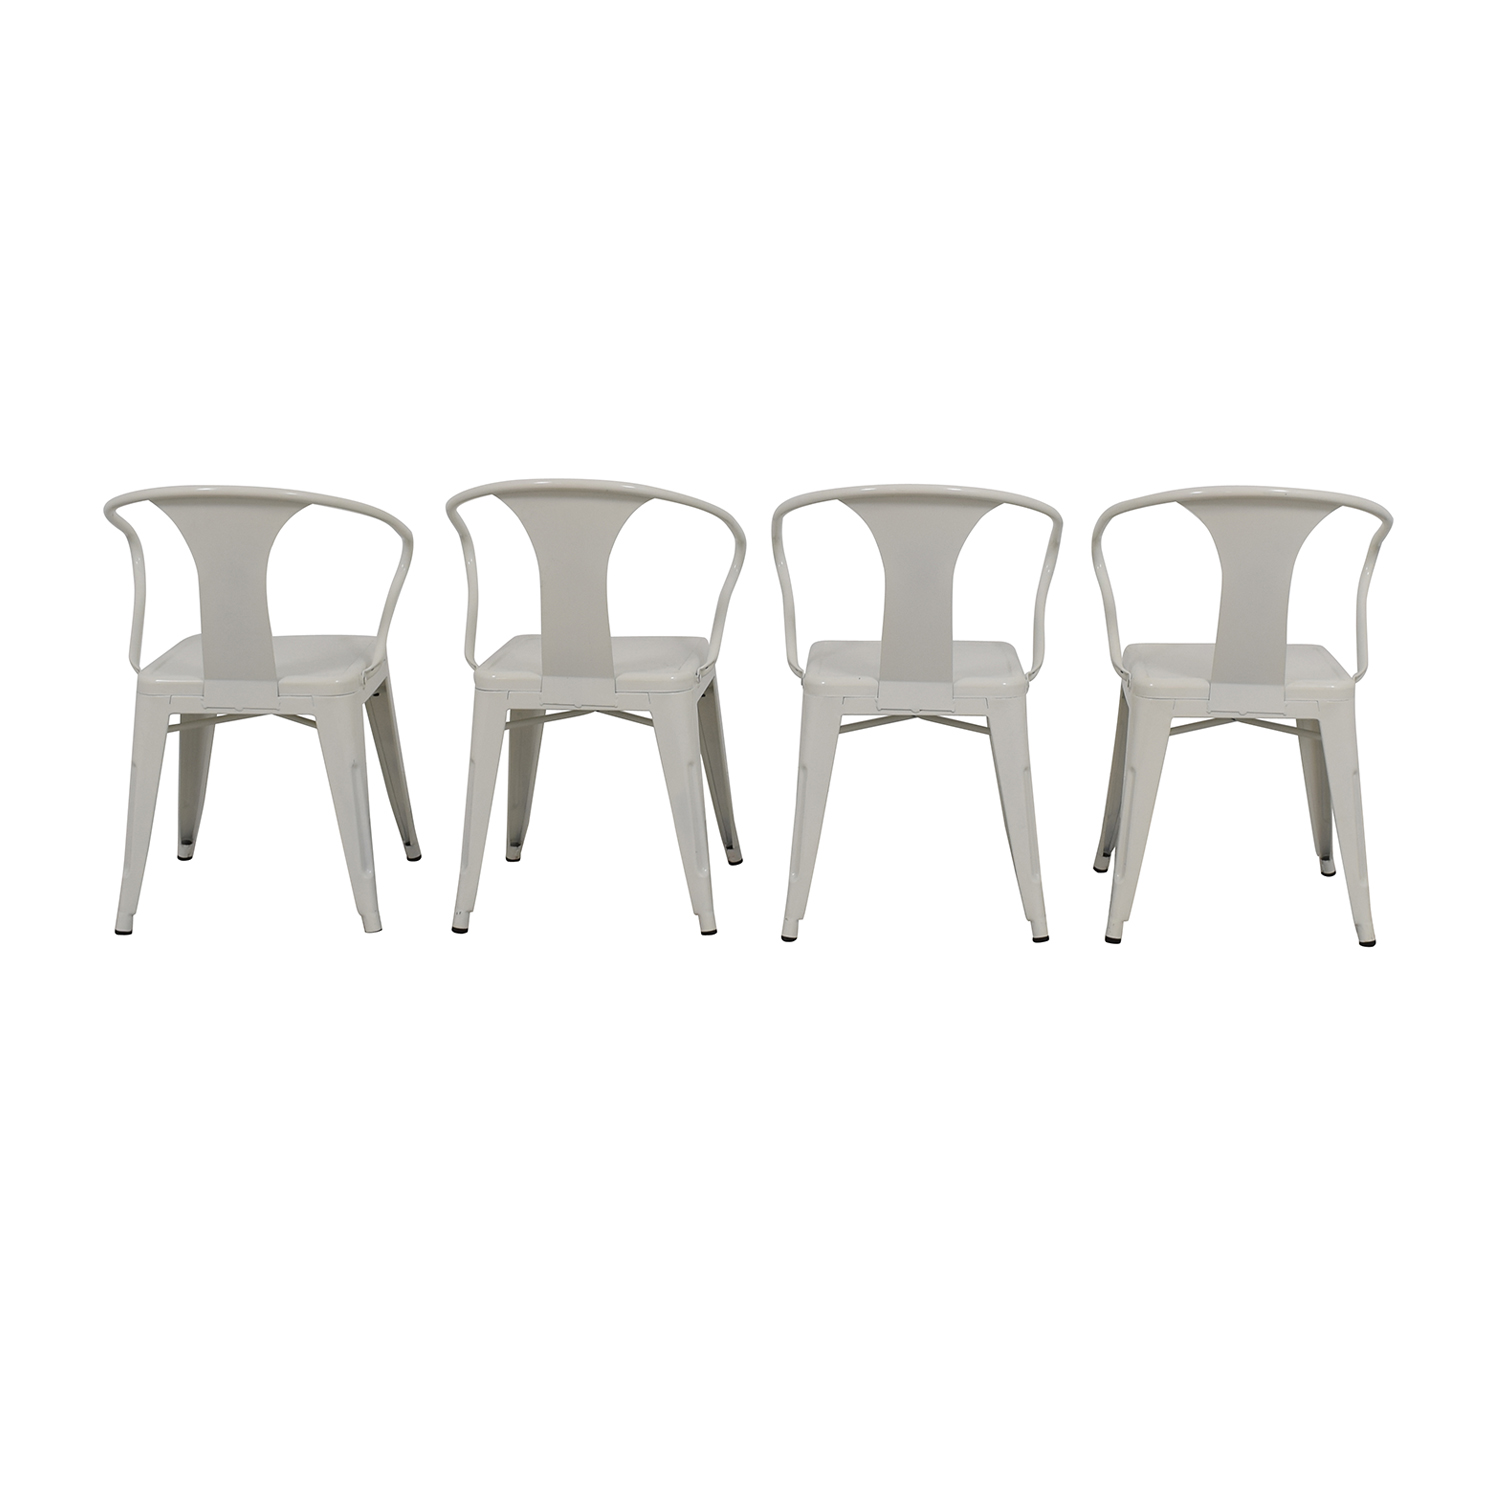 Charmant ... Overstock White European Chairs Overstock ...